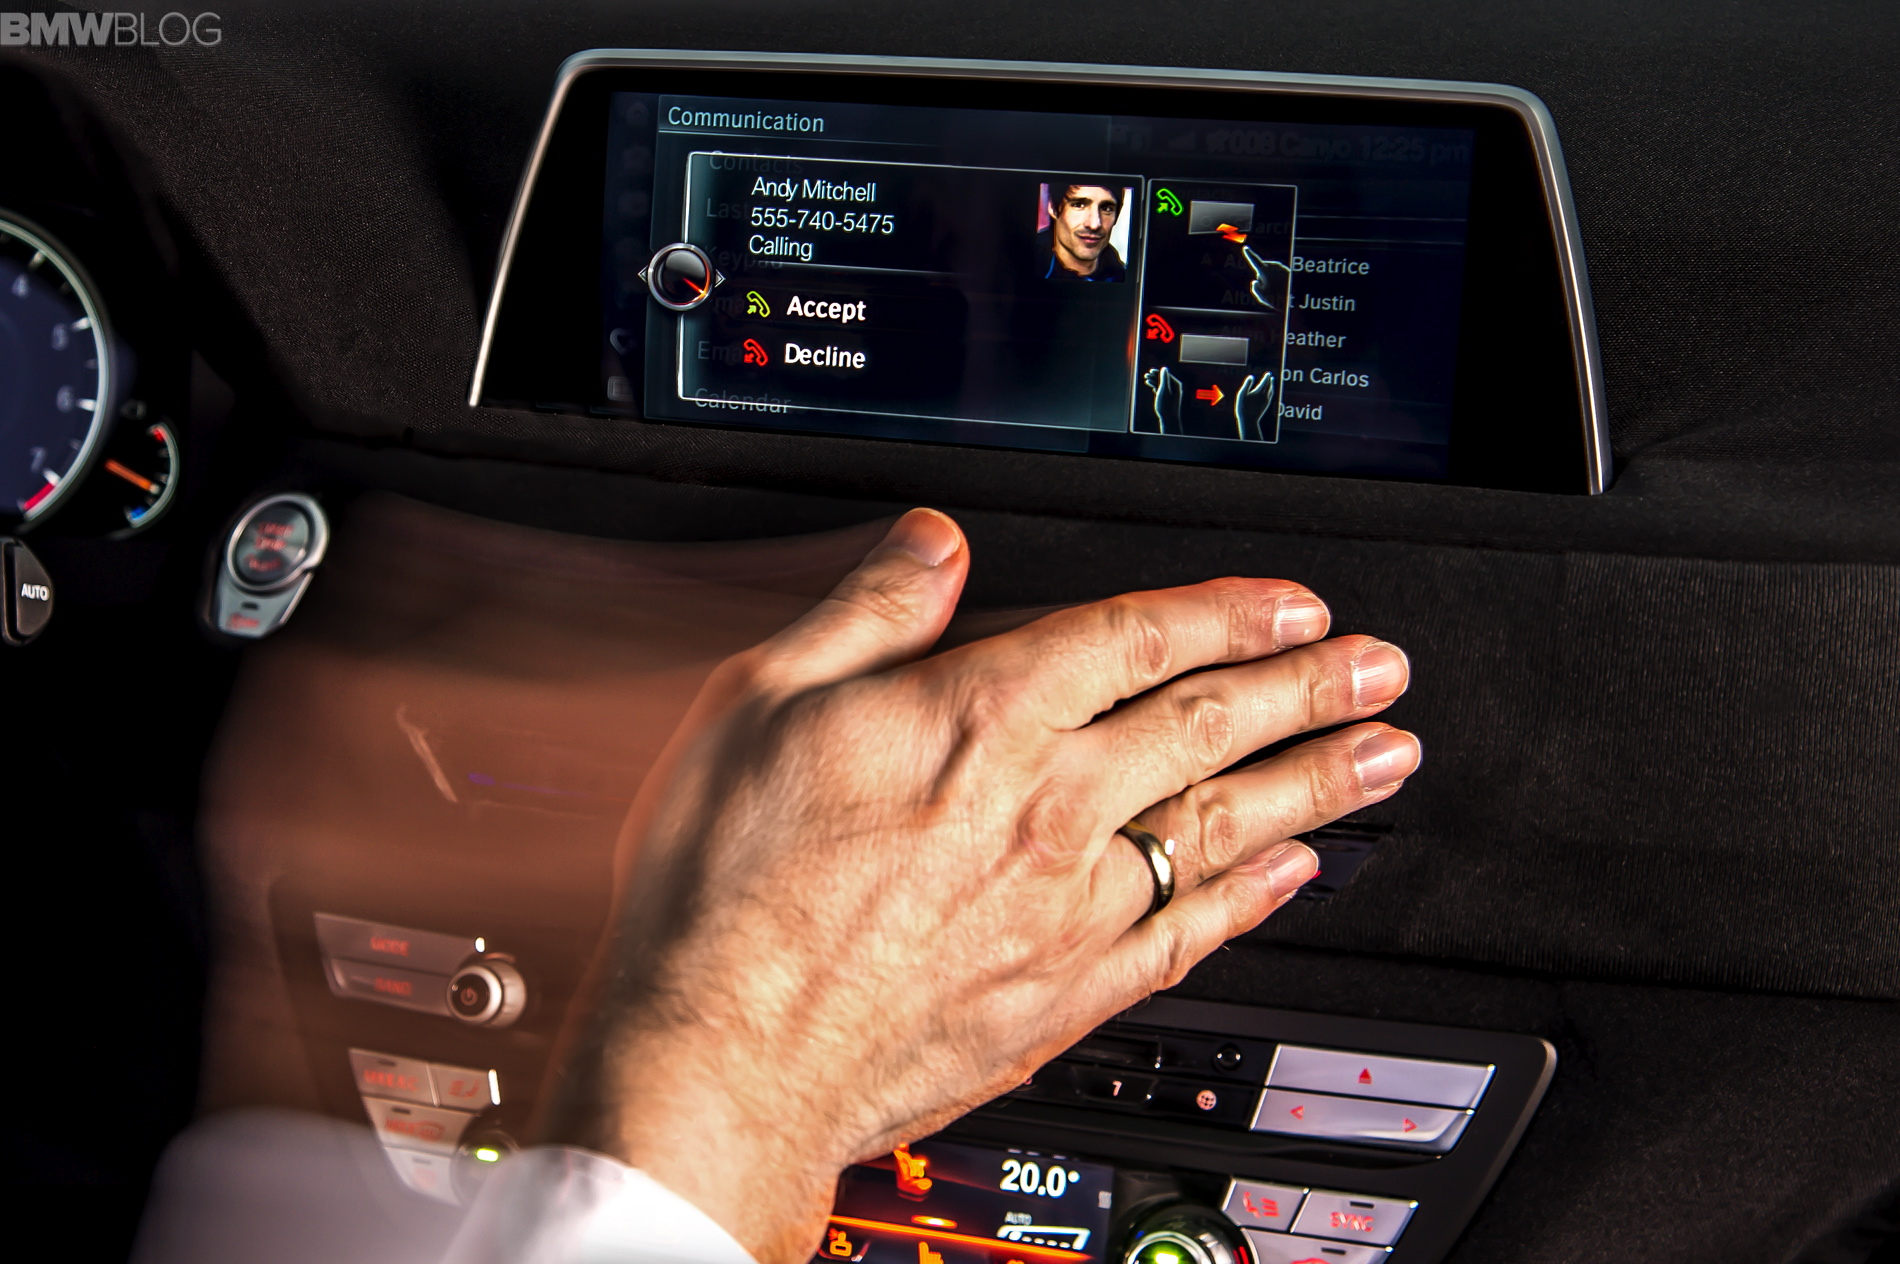 demo idrive system with gesture control